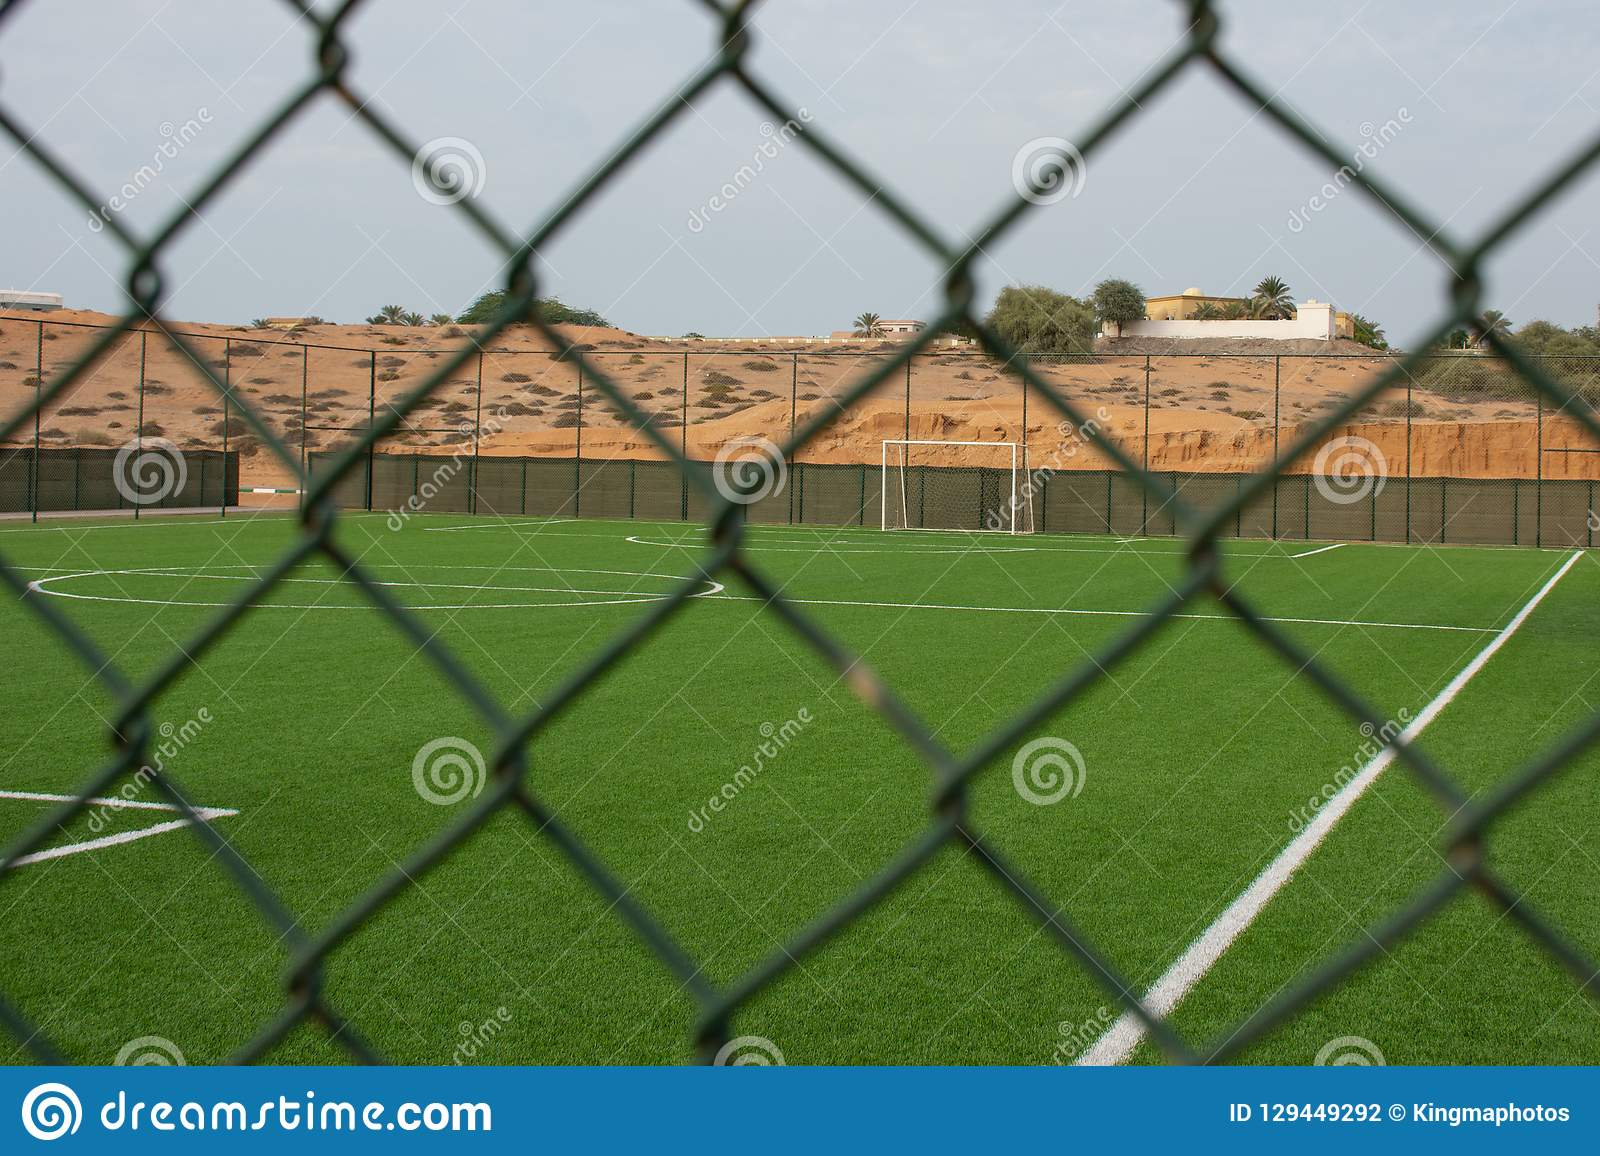 An empty soccer pitch viewed from outside the fence.